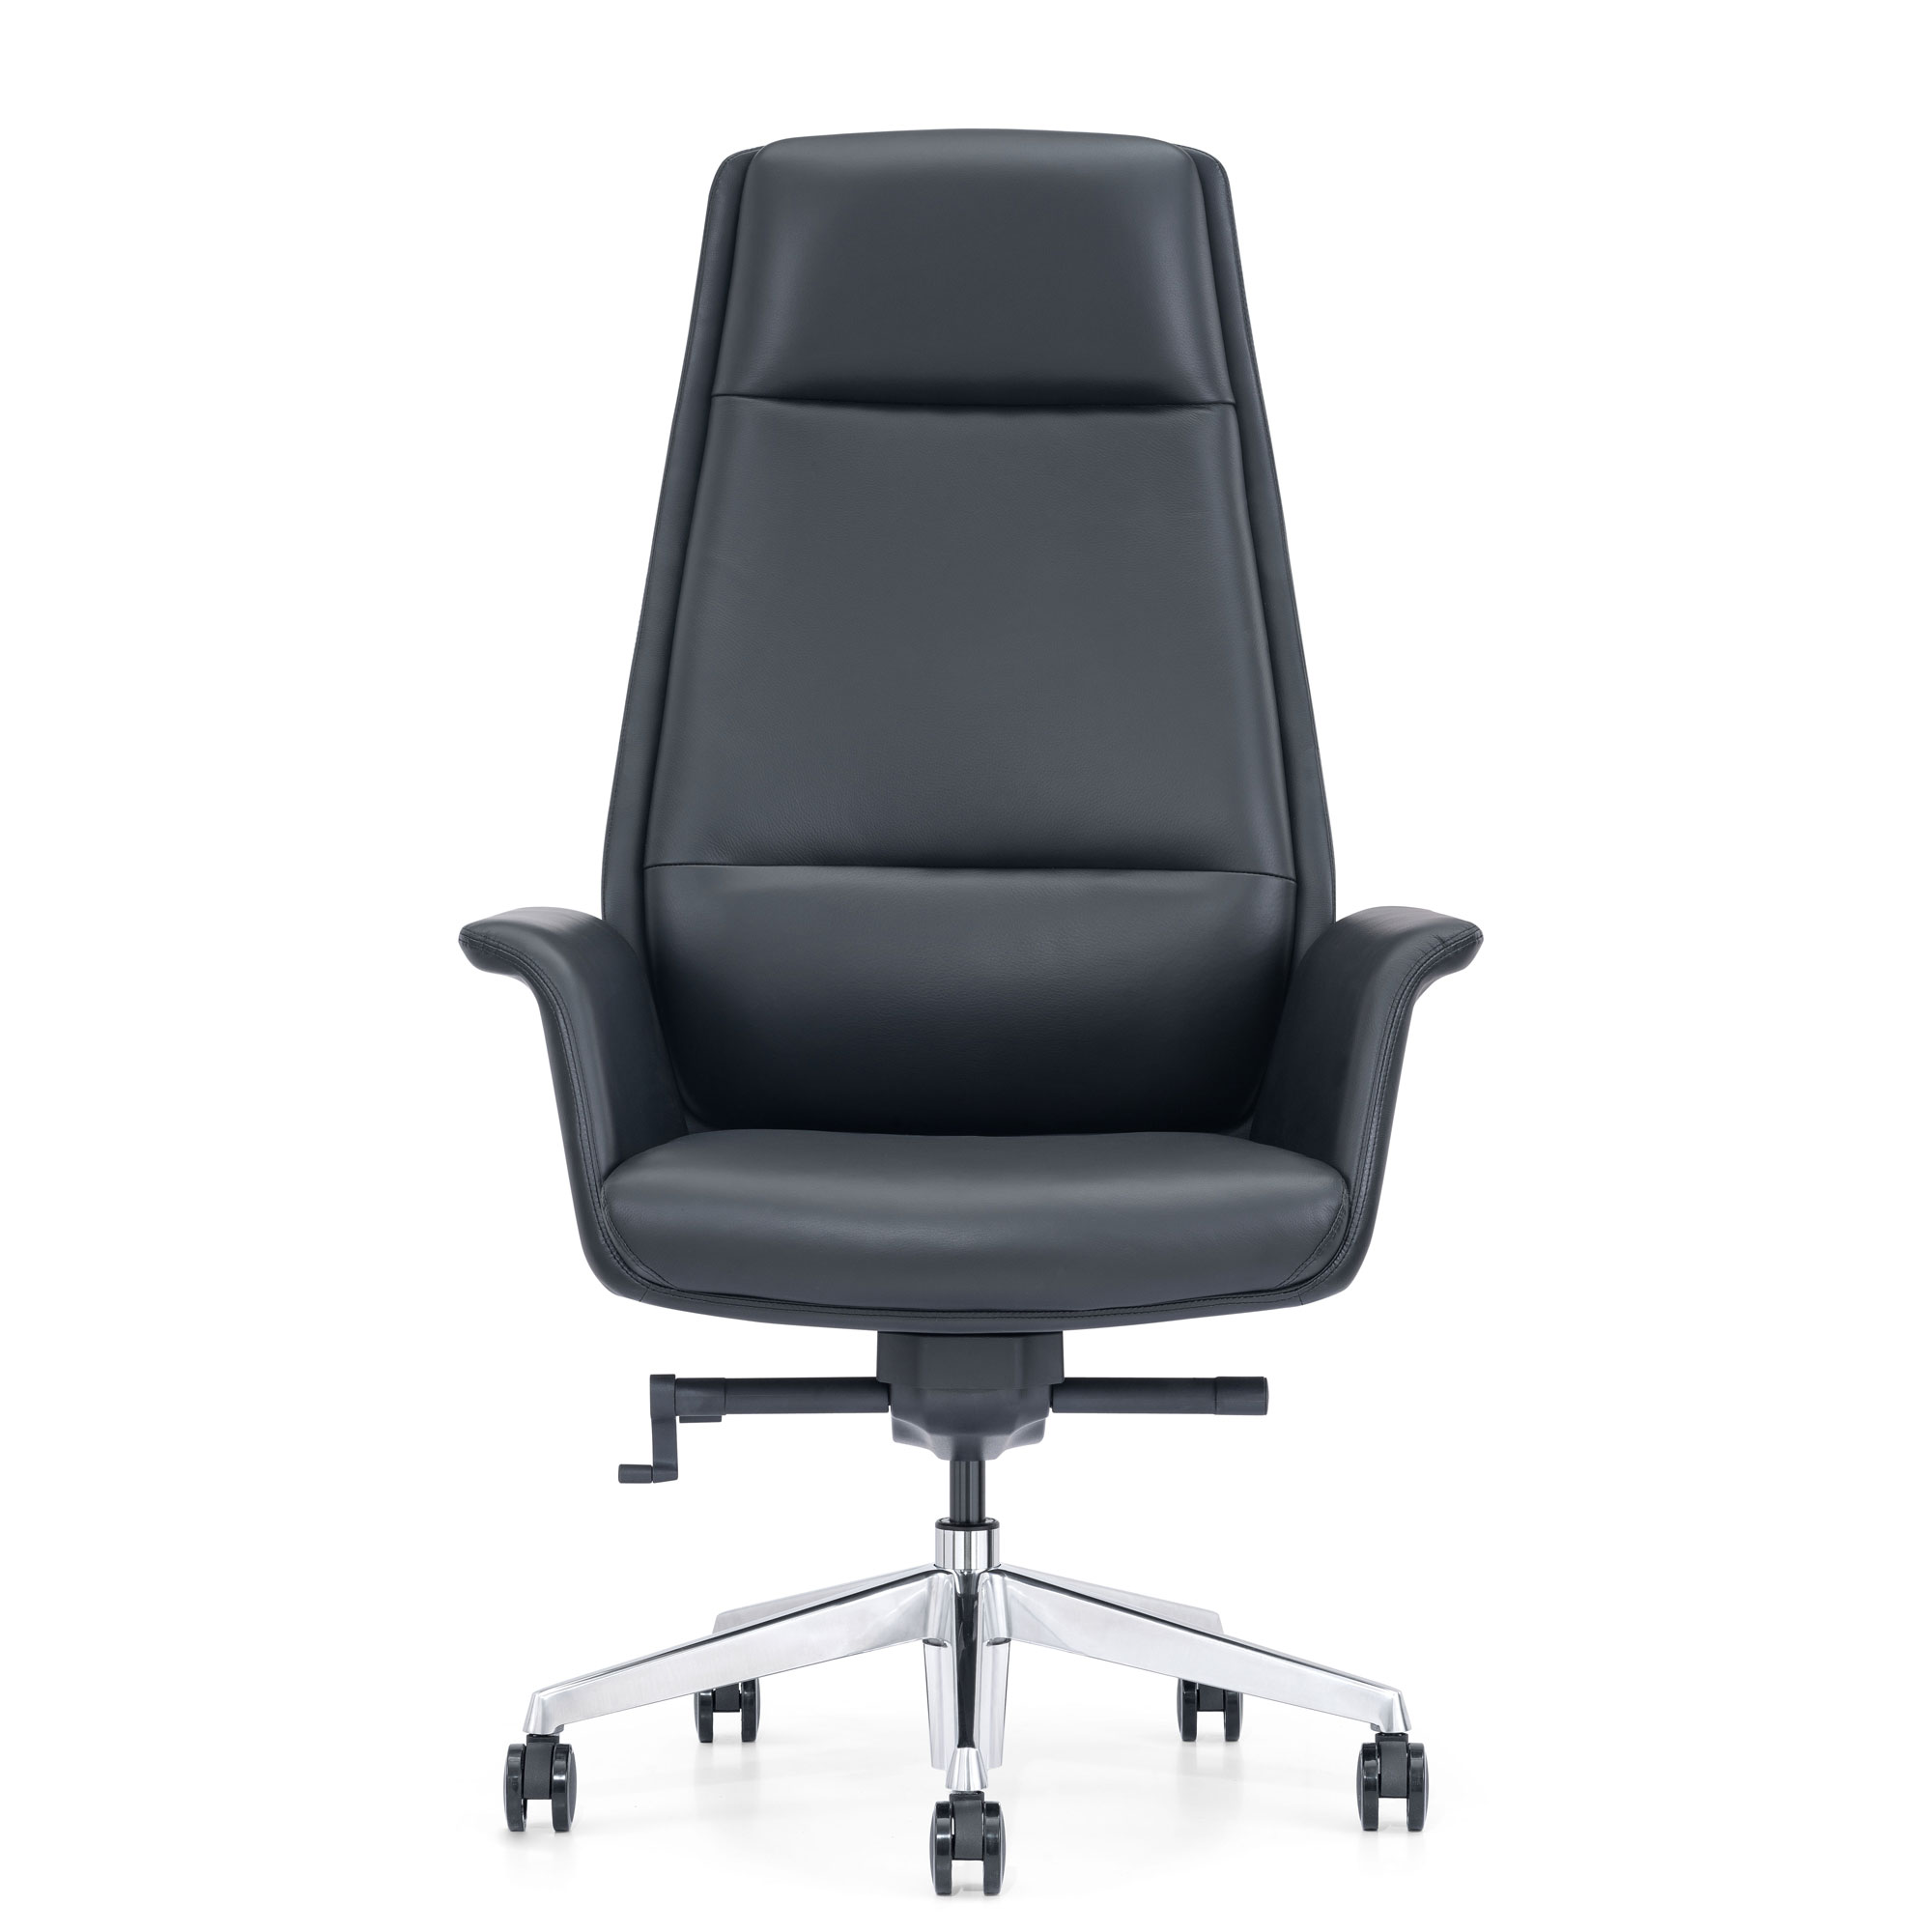 Classy Black Leather Home Office Executive Chair